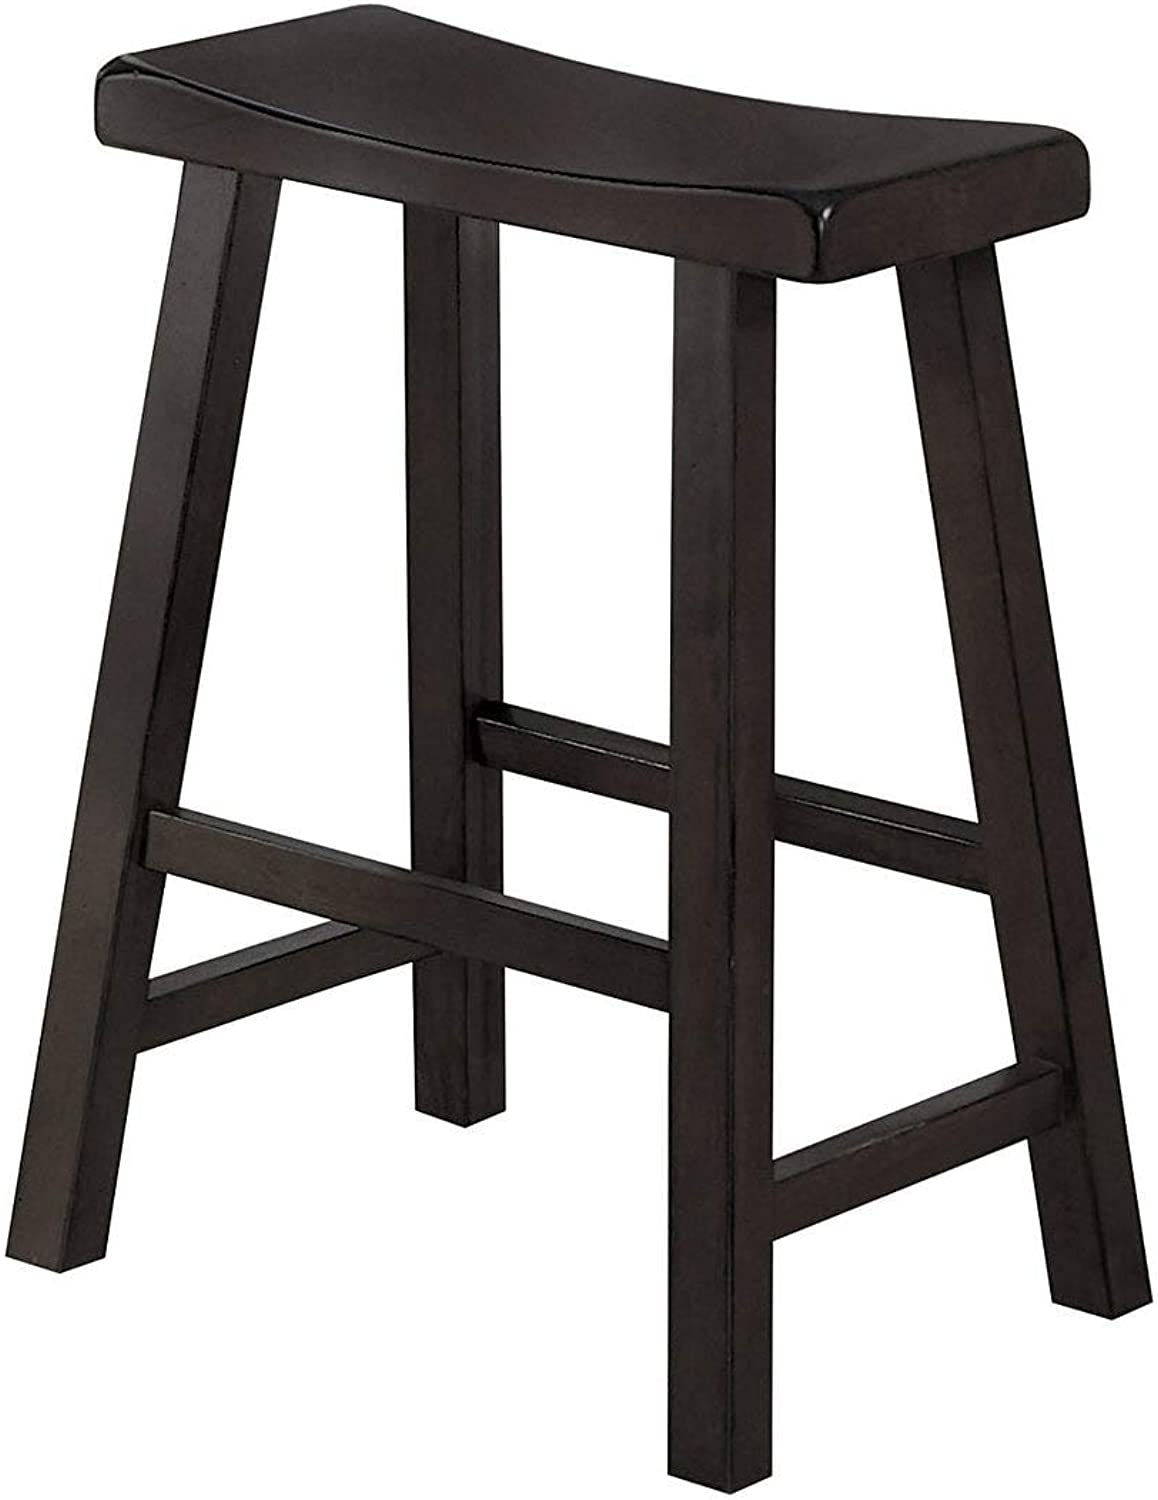 Benzara BM175976 Wooden Counter Height Stool with Saddle Seat, Set of Two, Brown